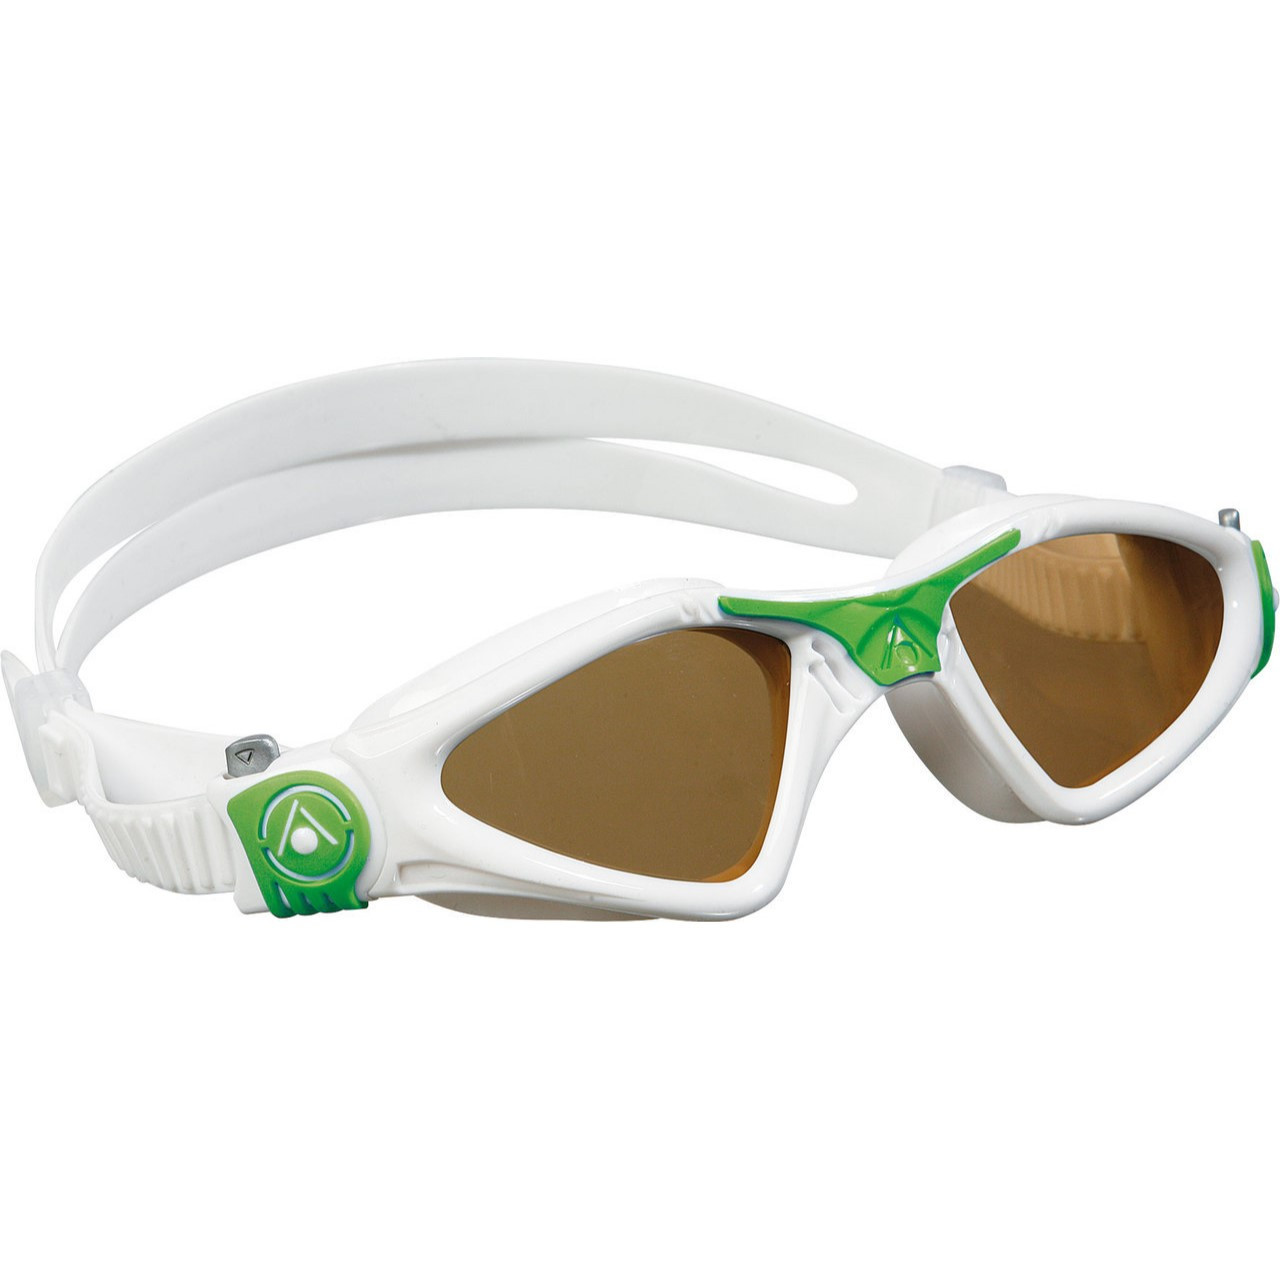 Aqua Sphere Kayenne Goggle with Polarized Lens for Smaller Faces - 2018 price